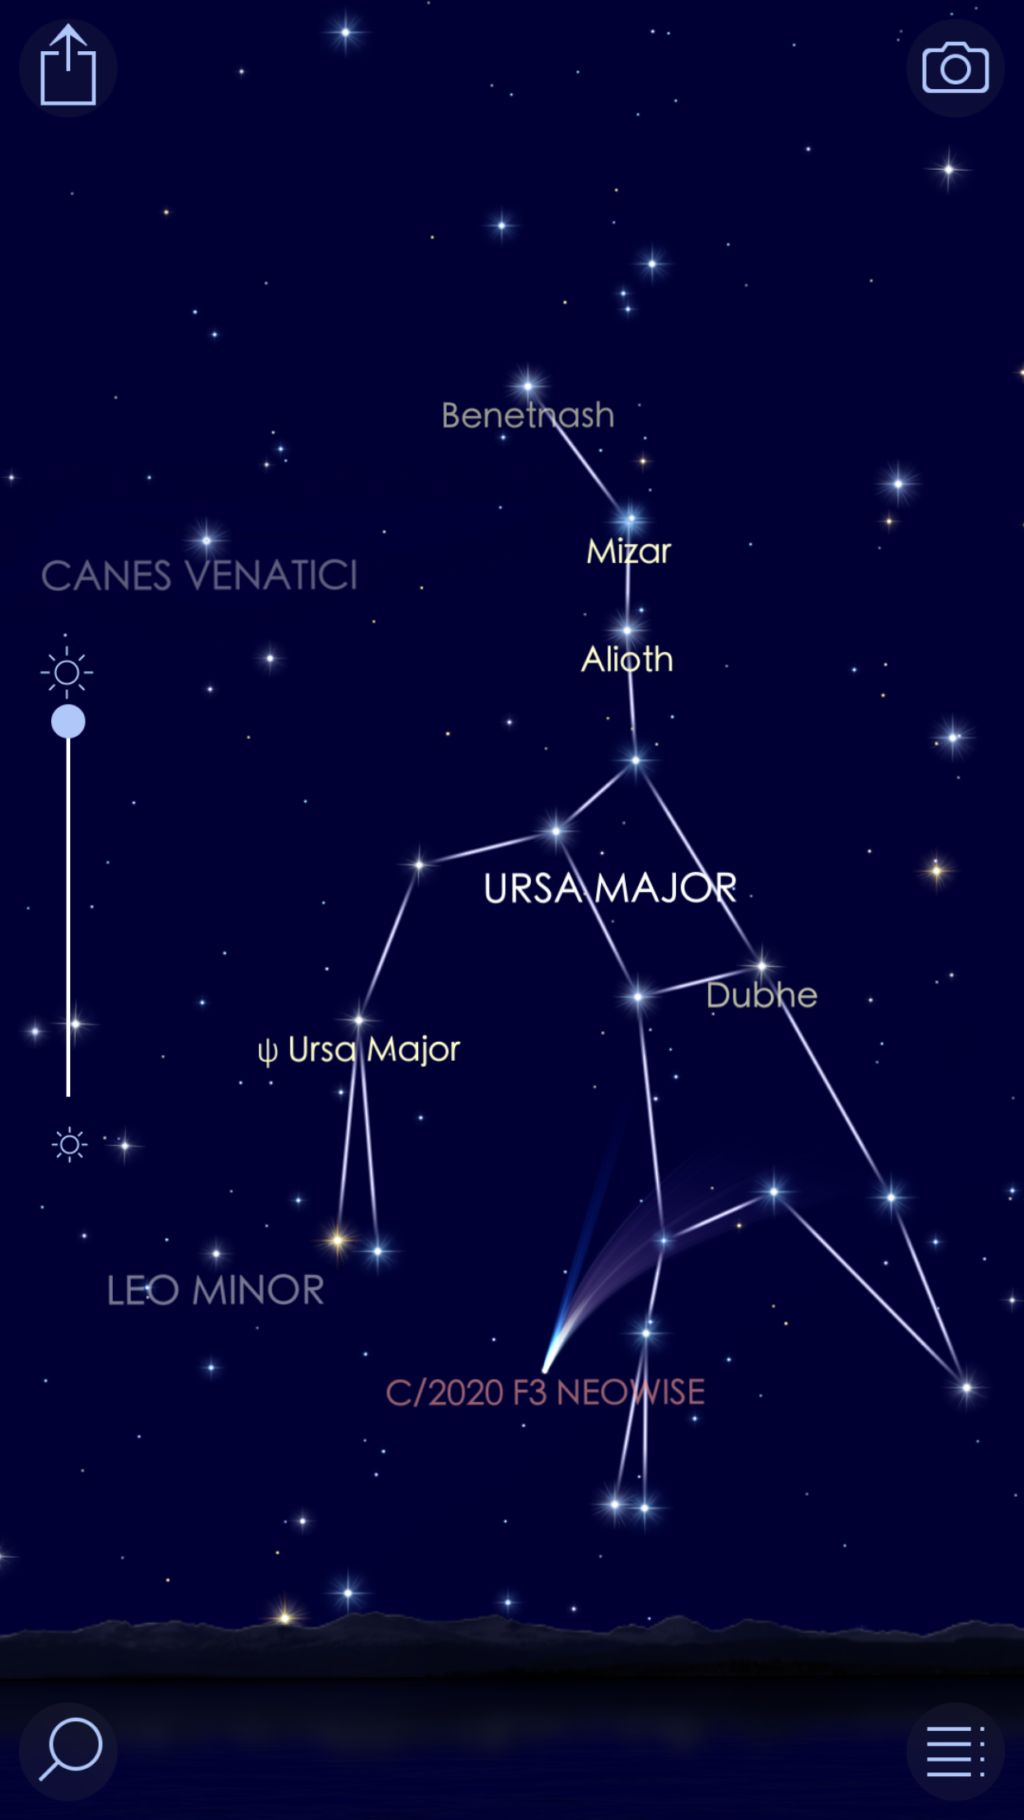 Screenshot of Star Walk 2 app showing comet NEOWISE